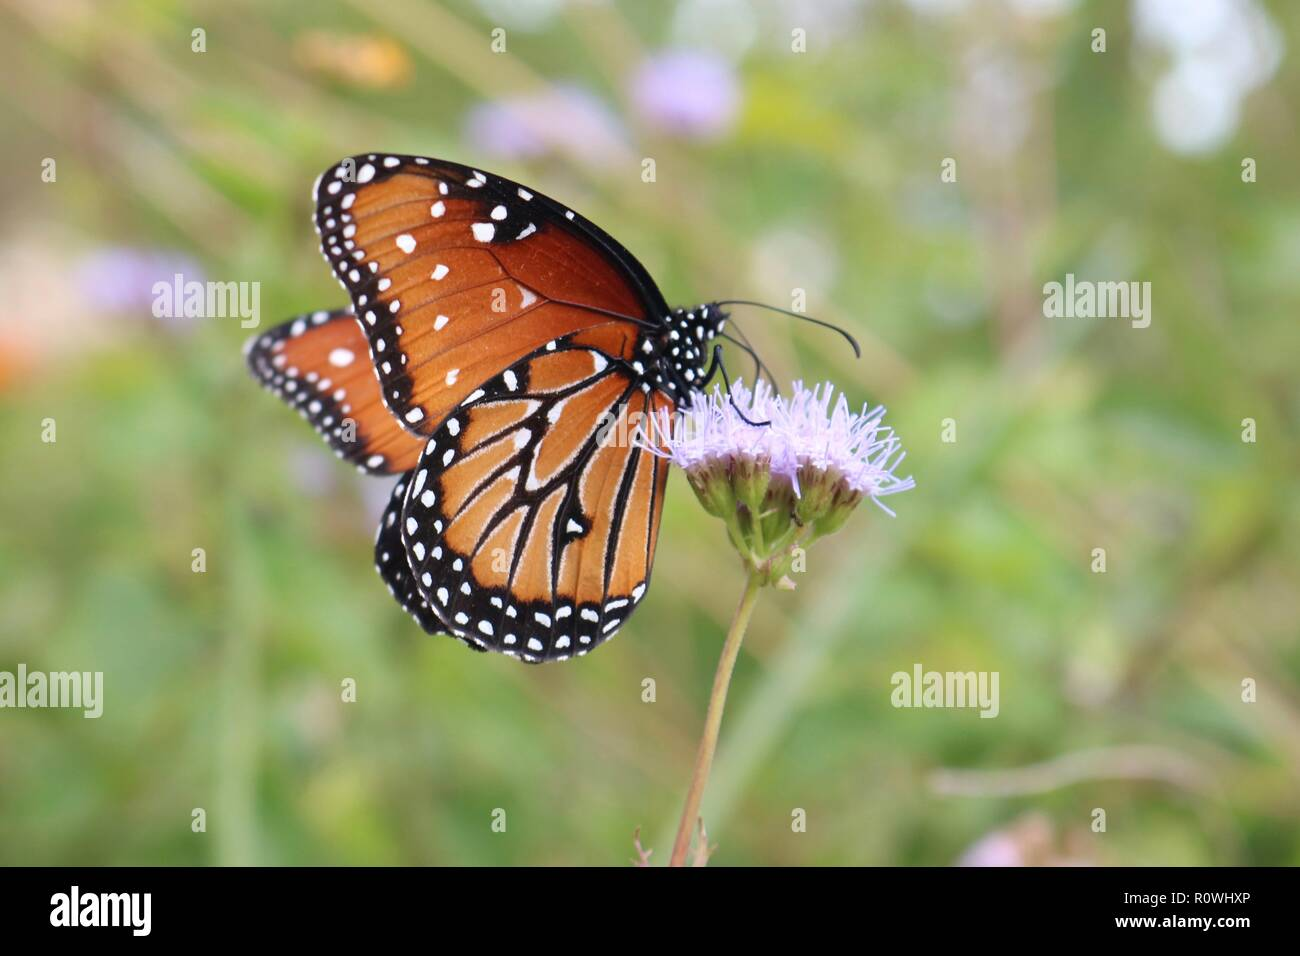 Closeup of a monarch butterfly on a purple wildflower about to fly away - Stock Image